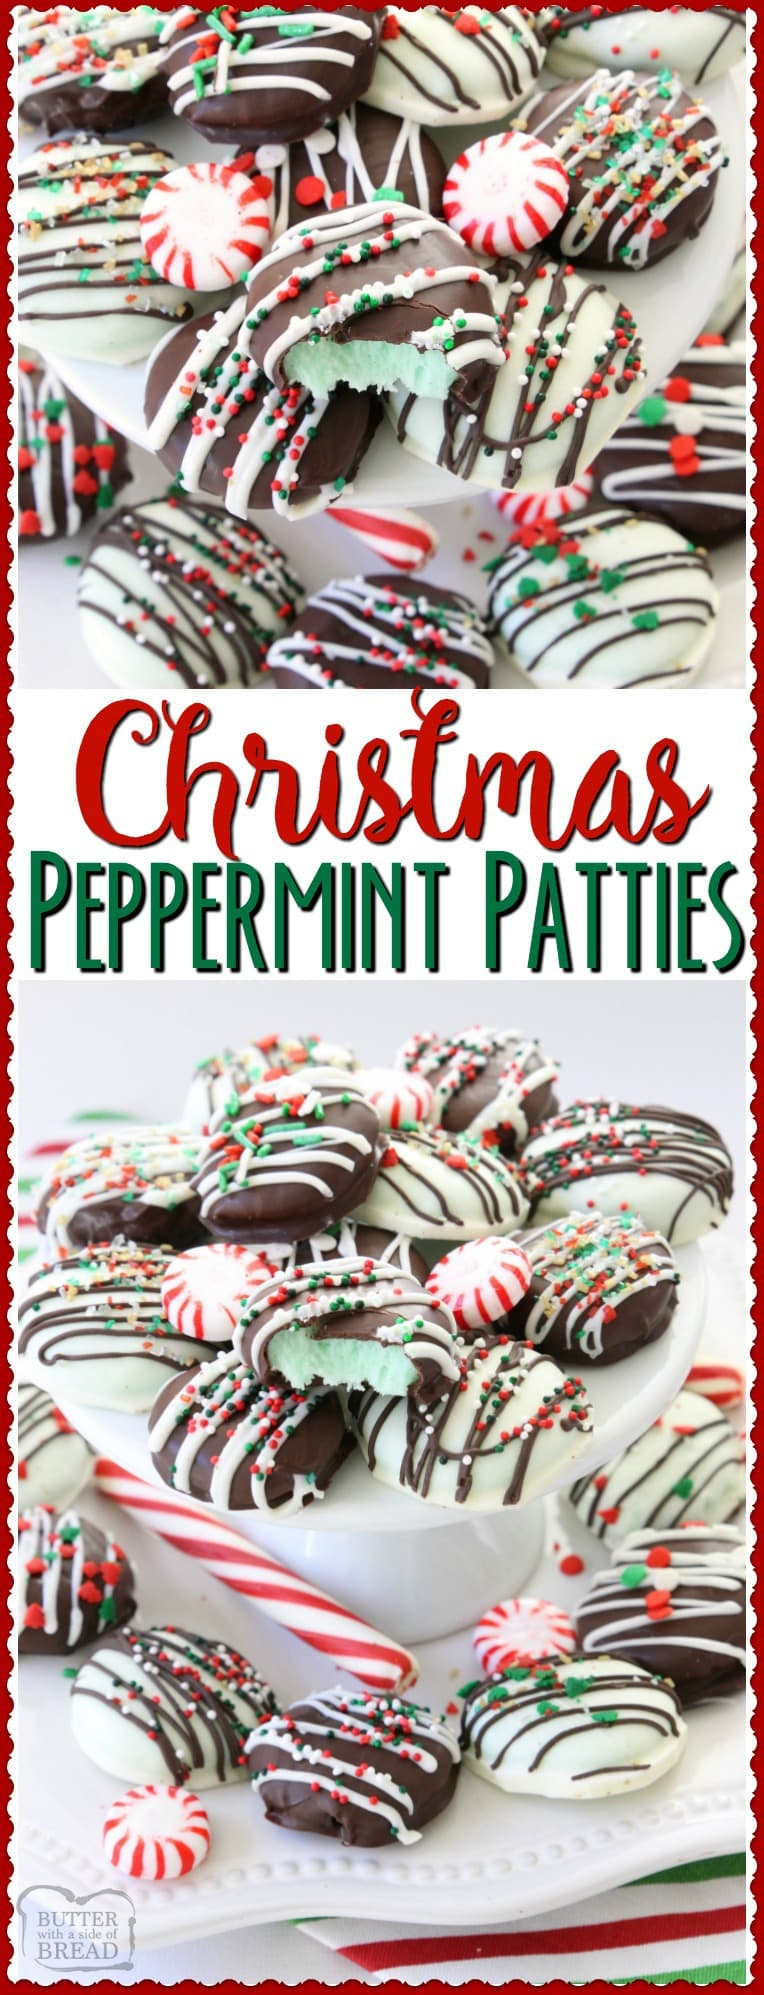 Christmas Peppermint Patties made easy with few ingredients! Perfect fun & festive dessert for holiday parties & gifts. They taste so much better homemade!